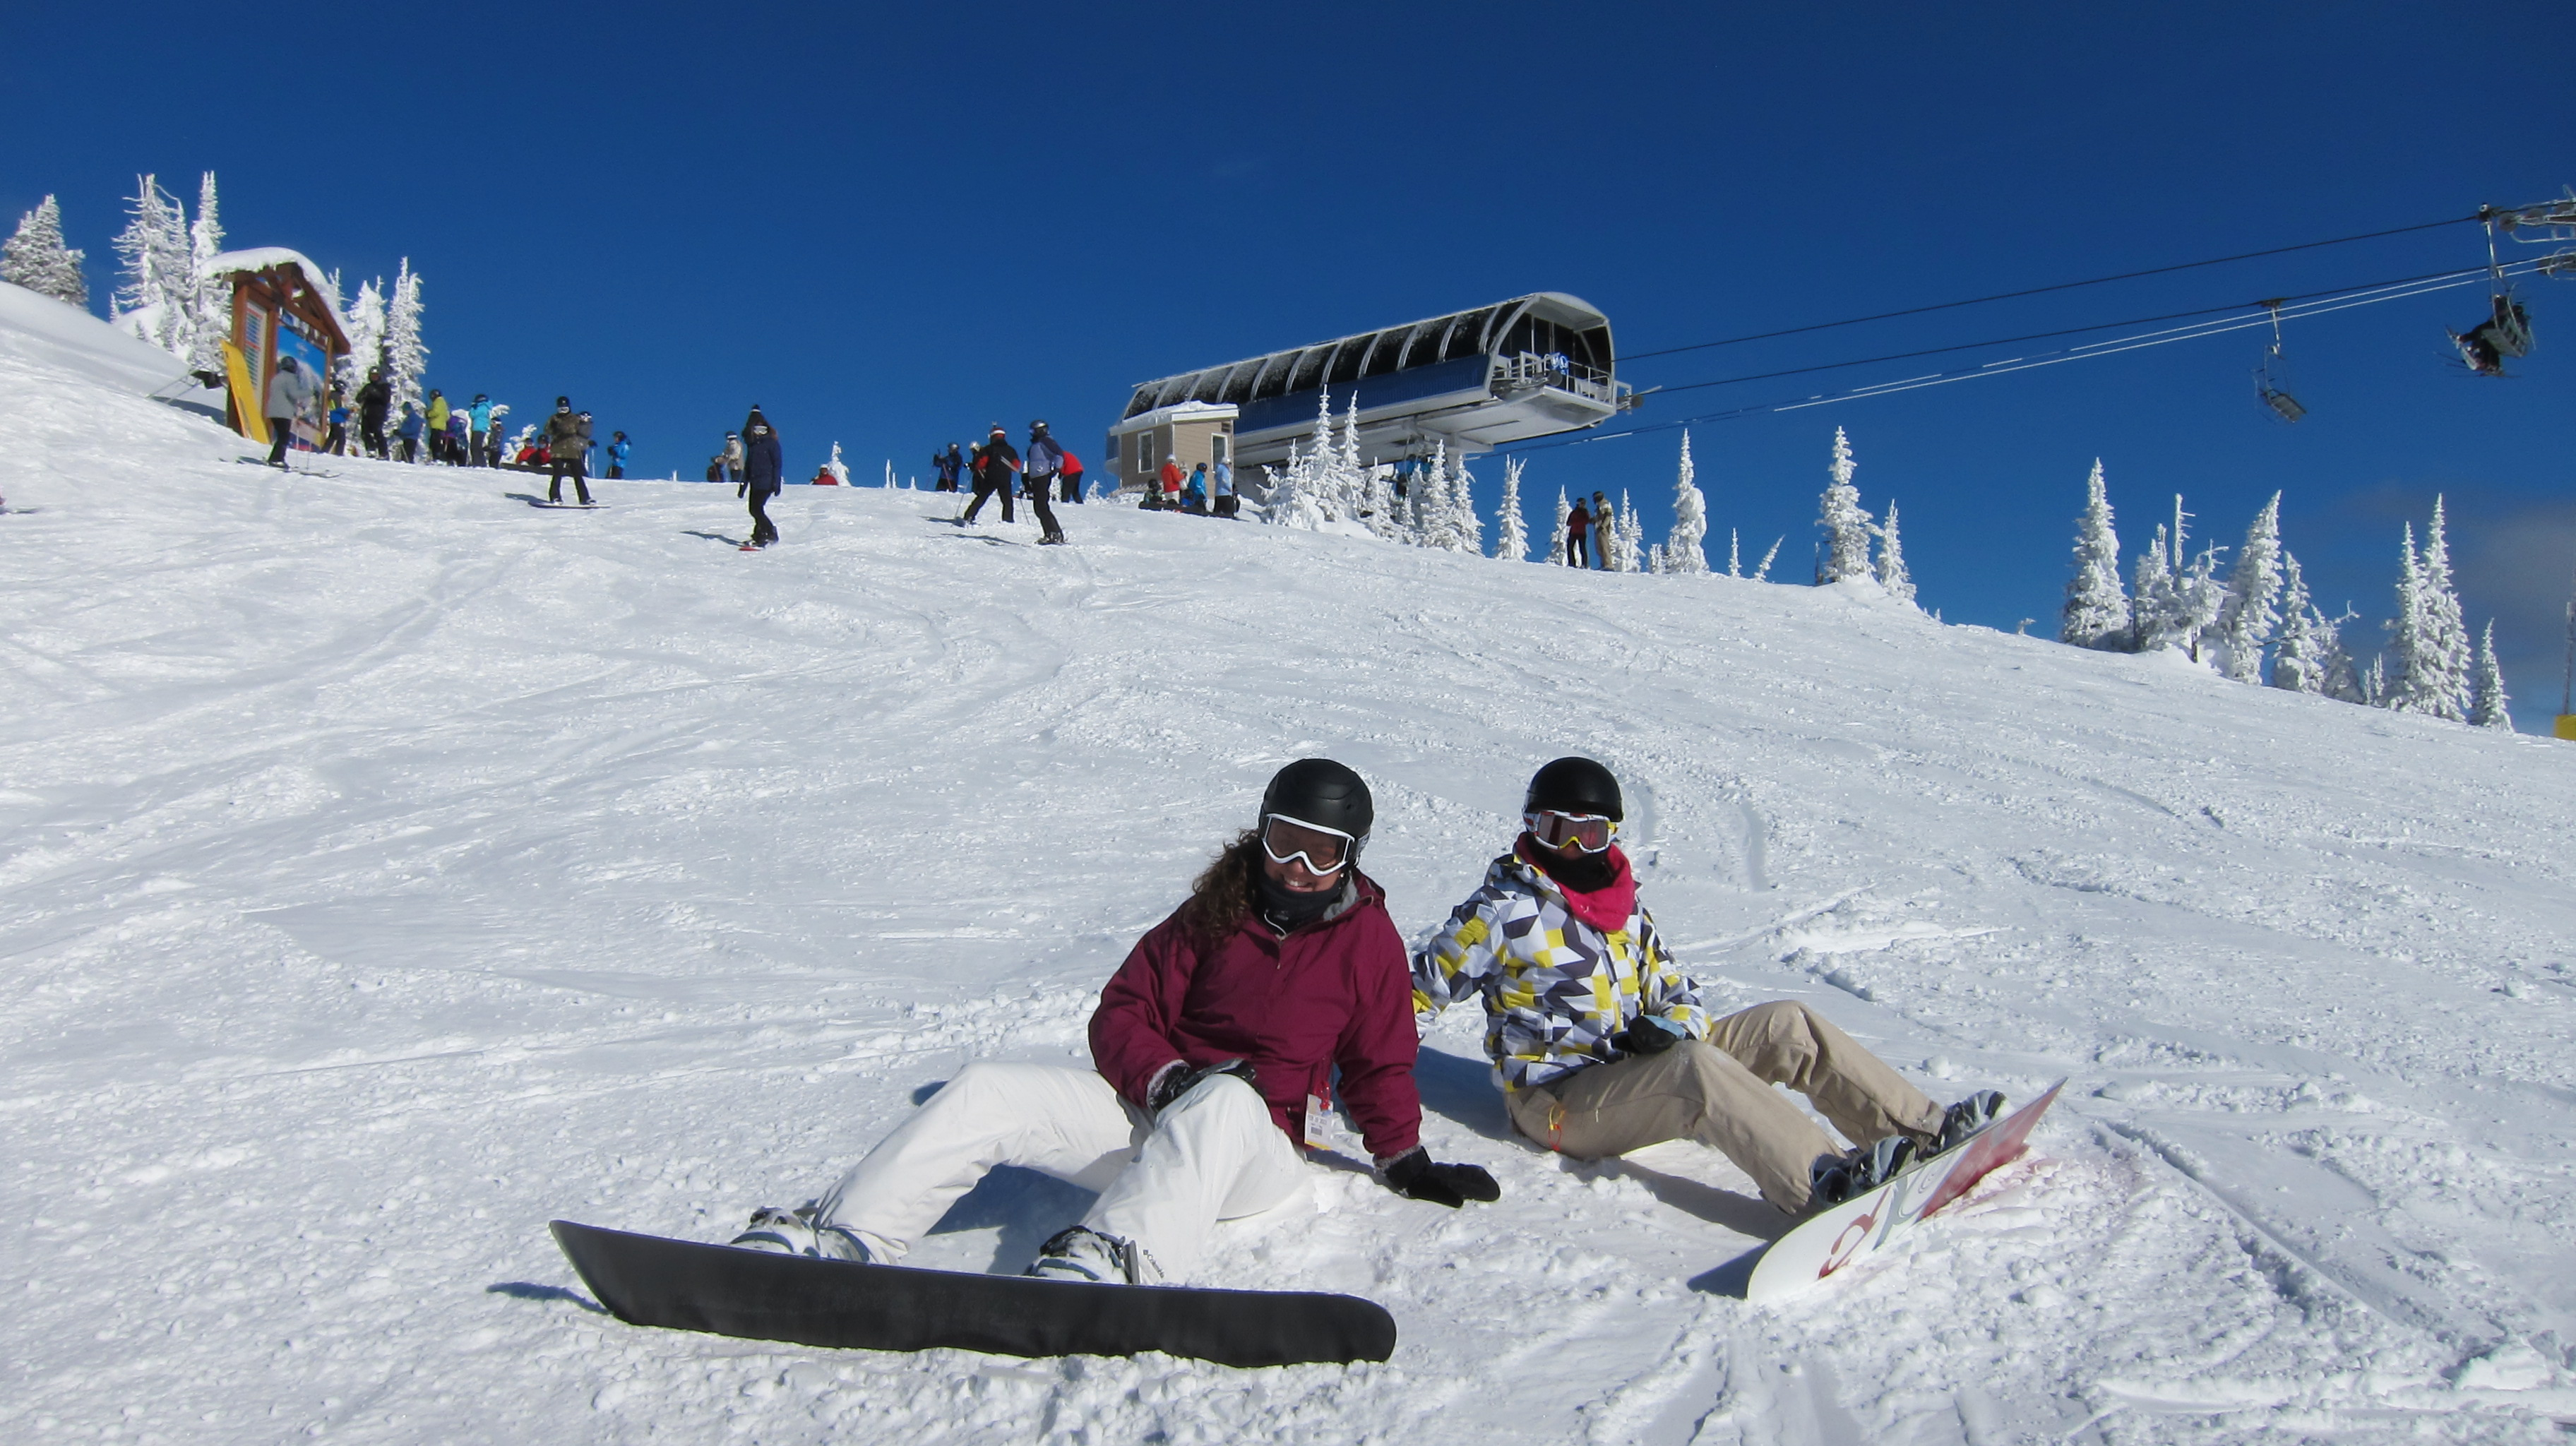 Snowboarders take a break at the Black Forest Chairlift